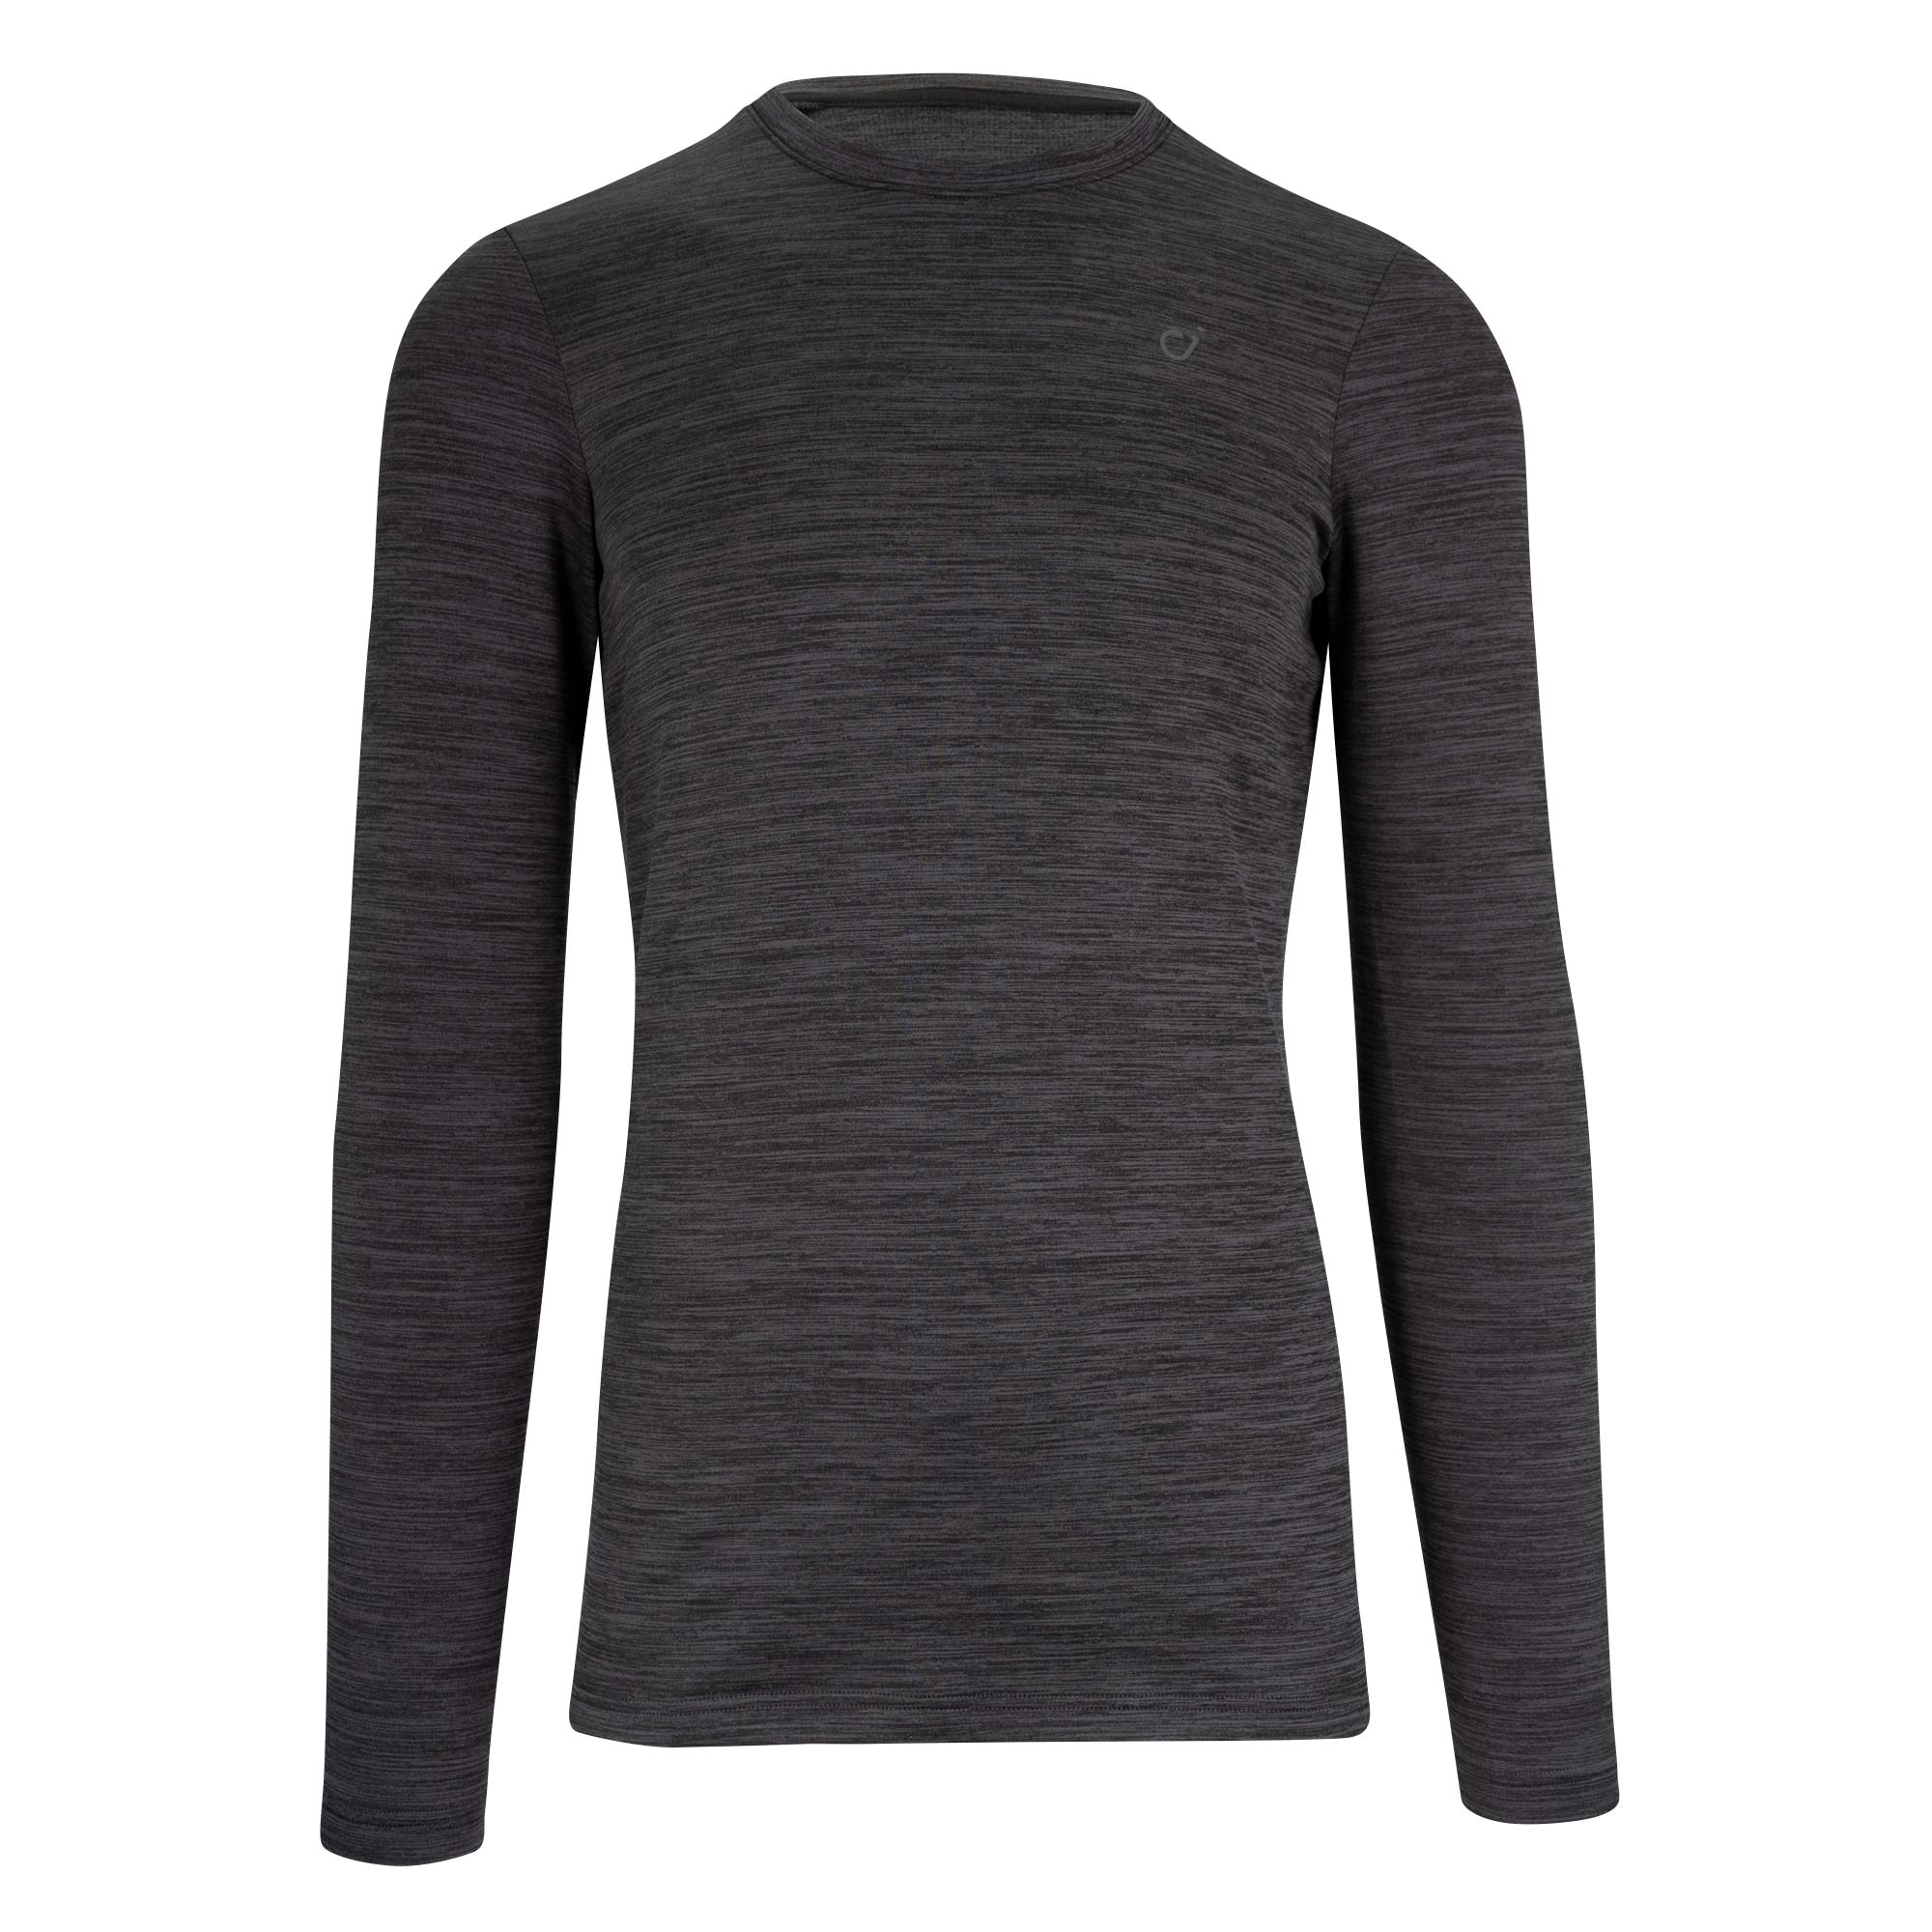 Men's Merino 210 Long Sleeve